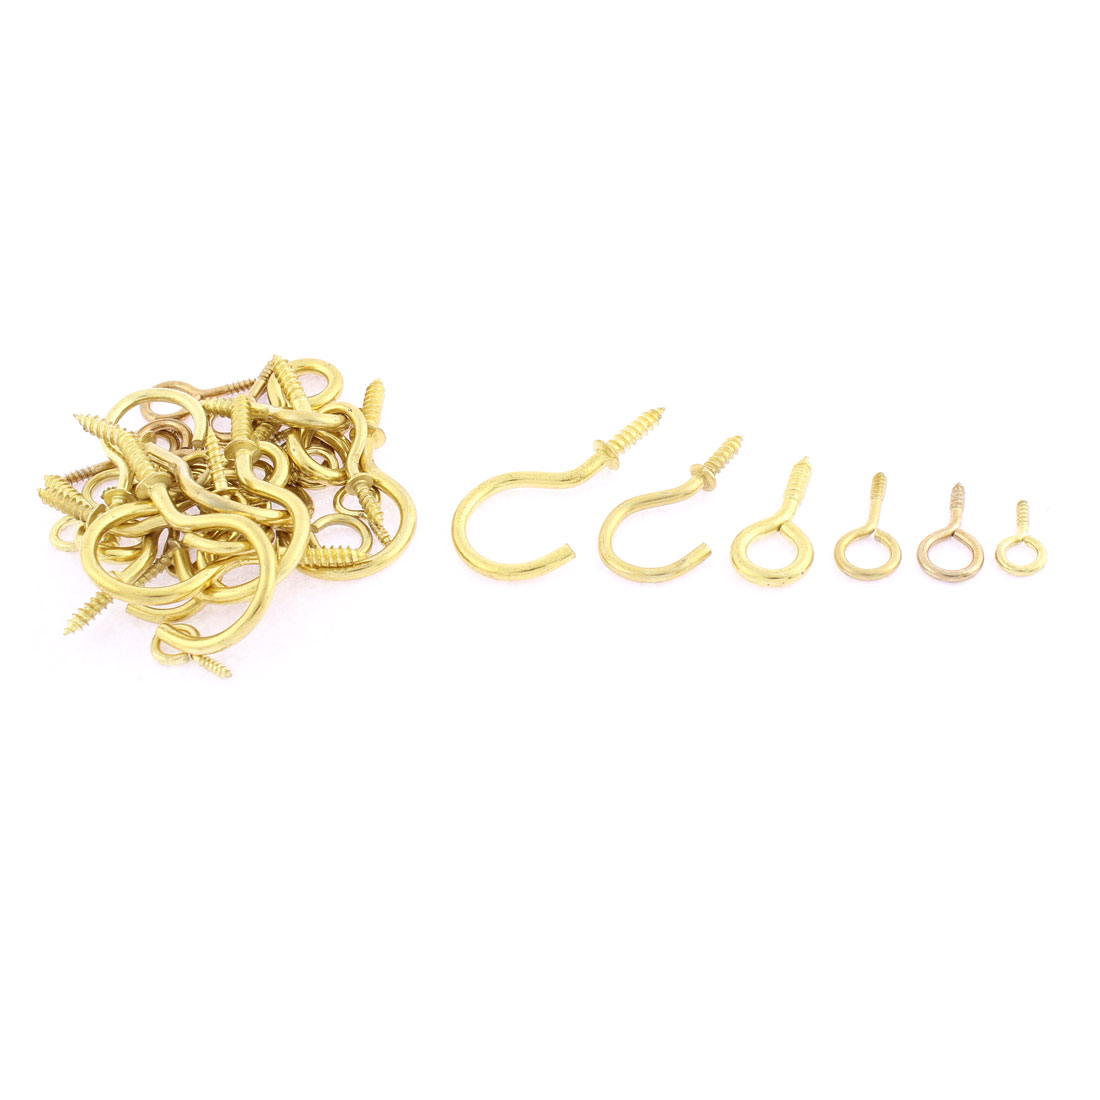 42pcs Gold Tone Eye Bolt Open Eyelet Hook Screws Assortment Set